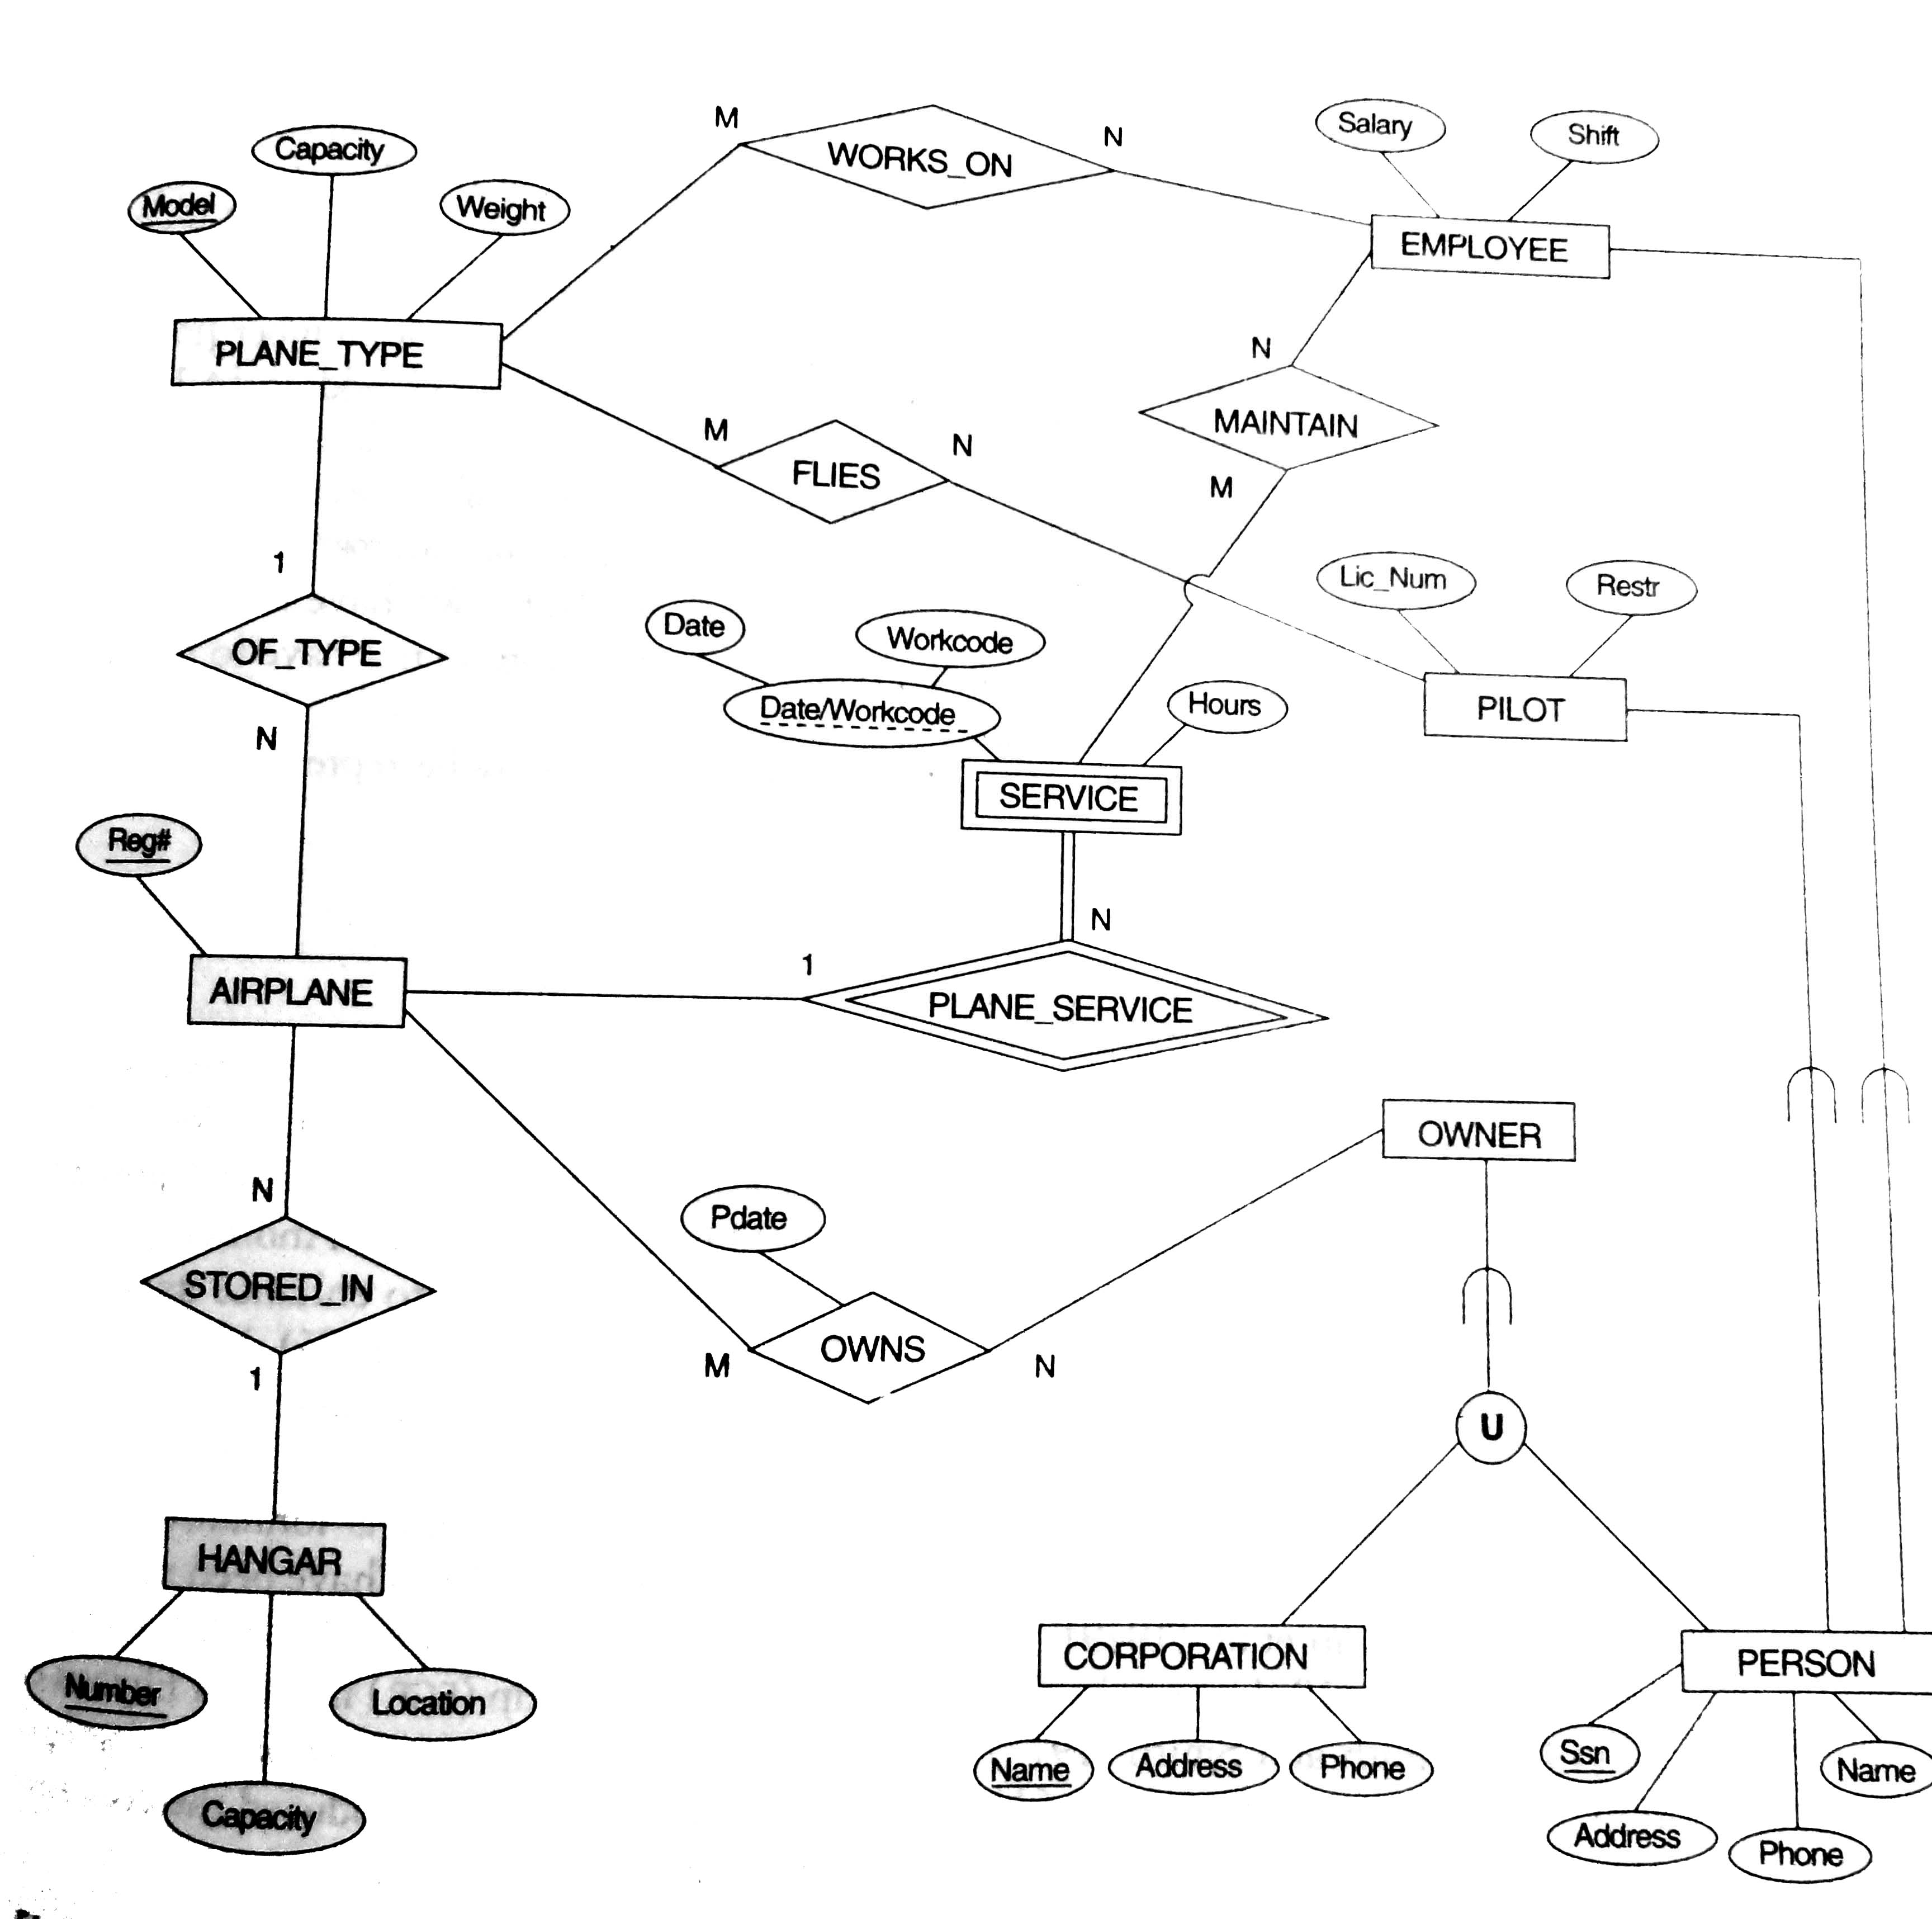 Roll No.18 An Eer Diagram For A Small Private Airport for Er Diagram With 6 Entities